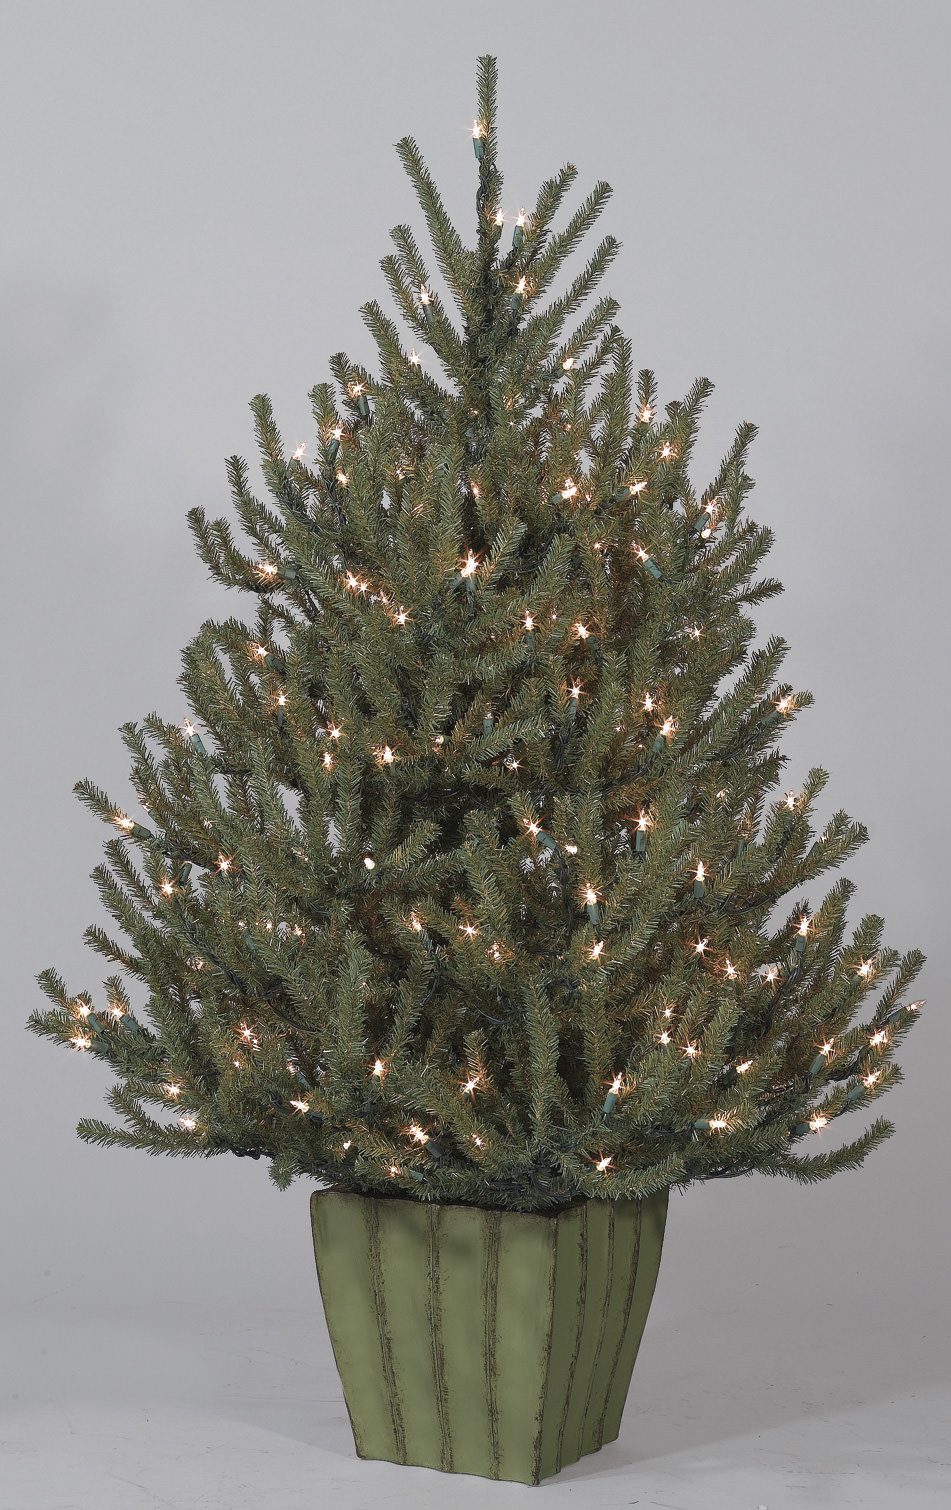 classics 4 baby spruce potted artificial christmas tree - Potted Artificial Christmas Trees